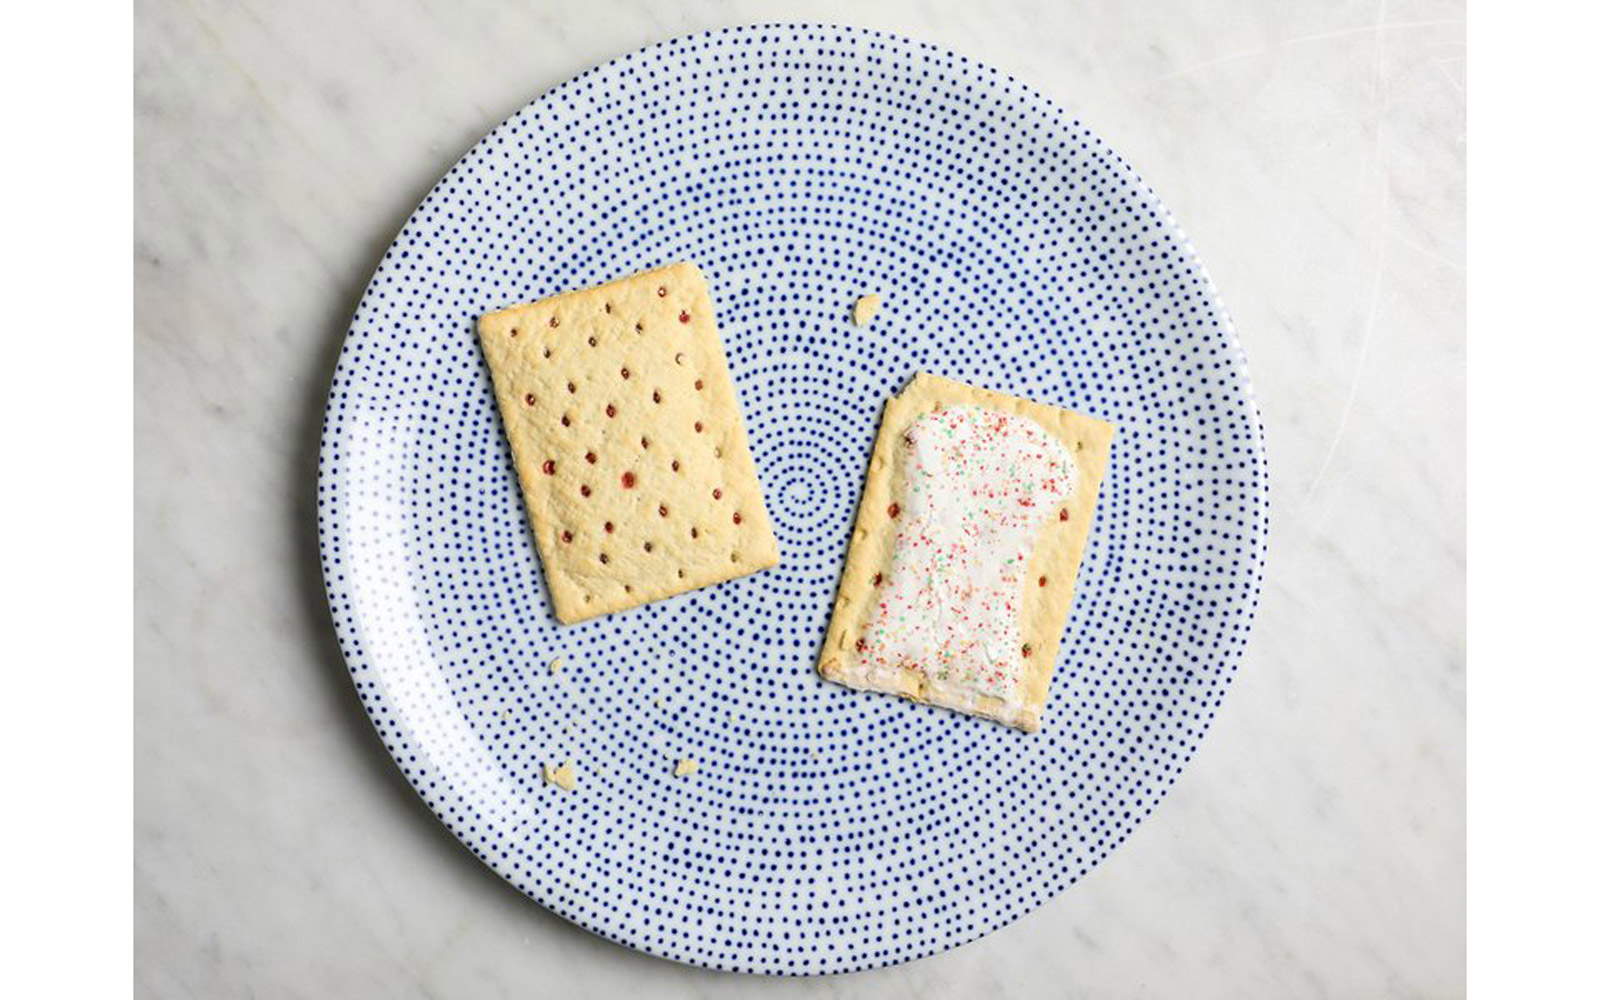 Unfrosted Strawberry and Strawberry Poptarts